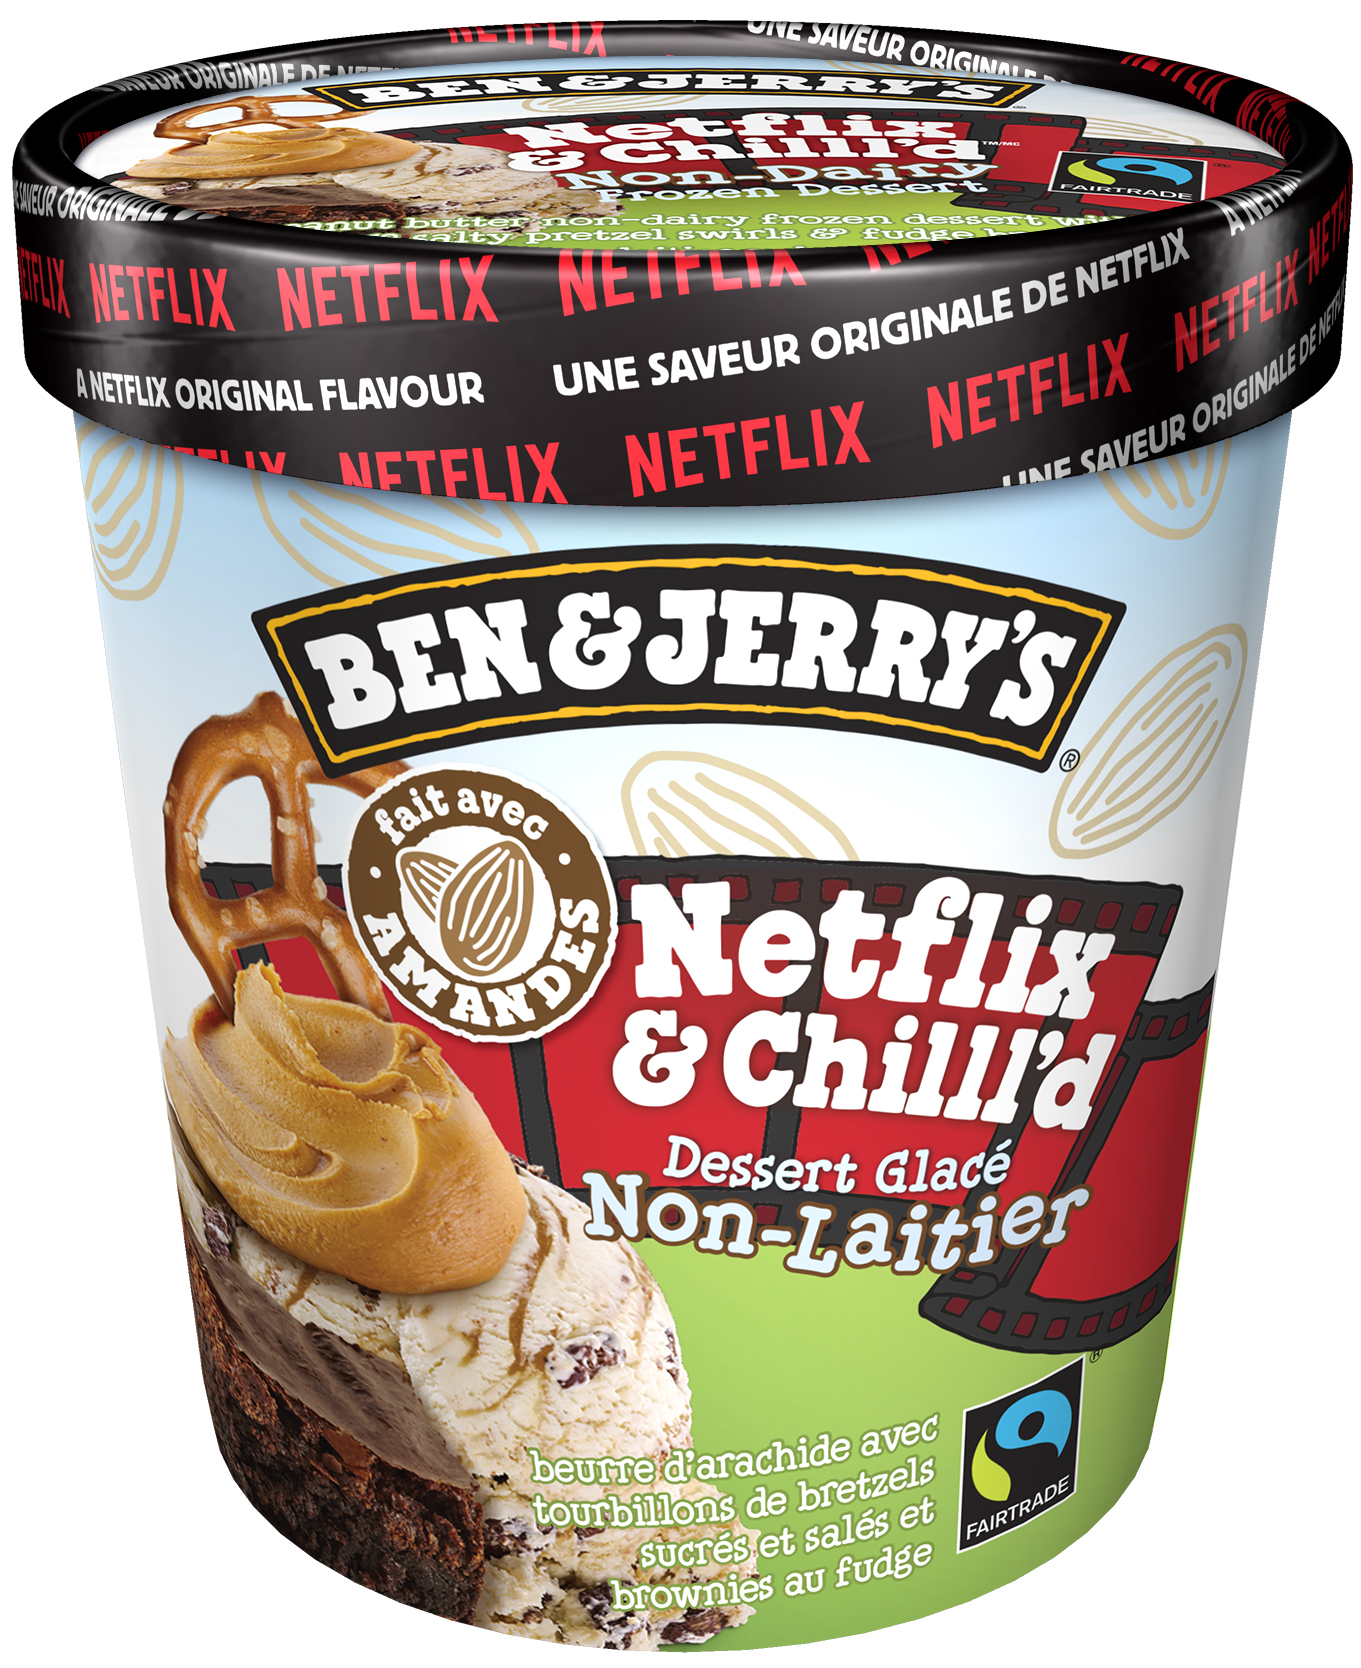 Ben & Jerry's - Netflix & Chill'd 2